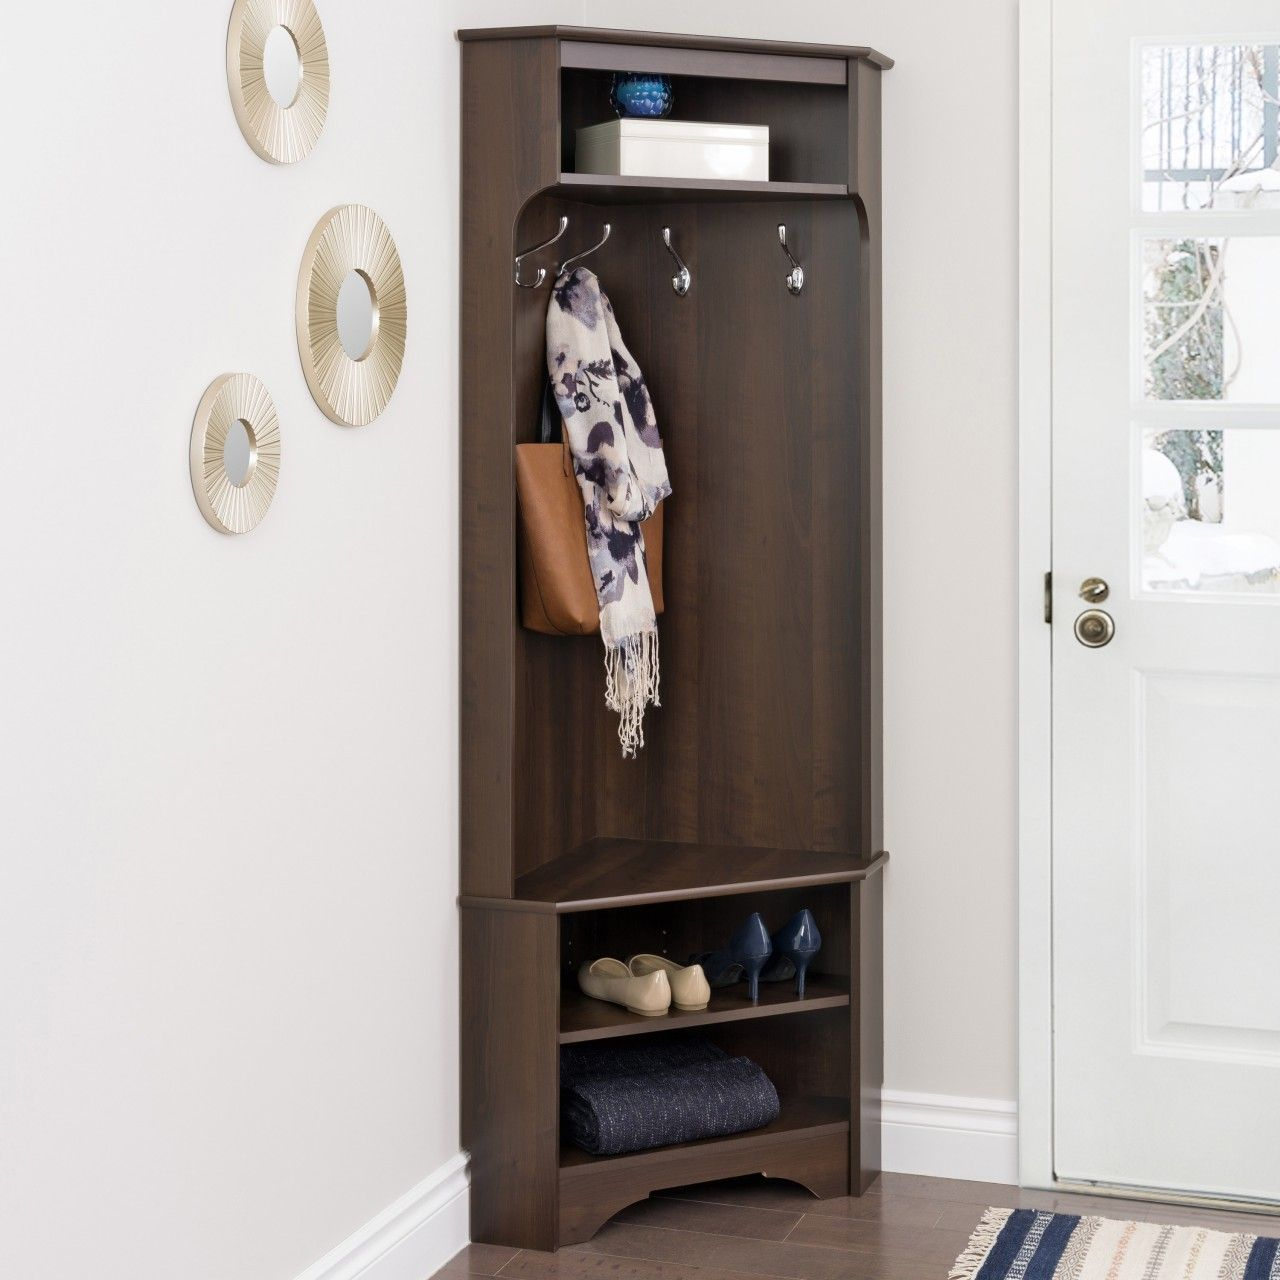 Space saving hallway furniture   Best images about Hall and Entryway Furniture on Pinterest